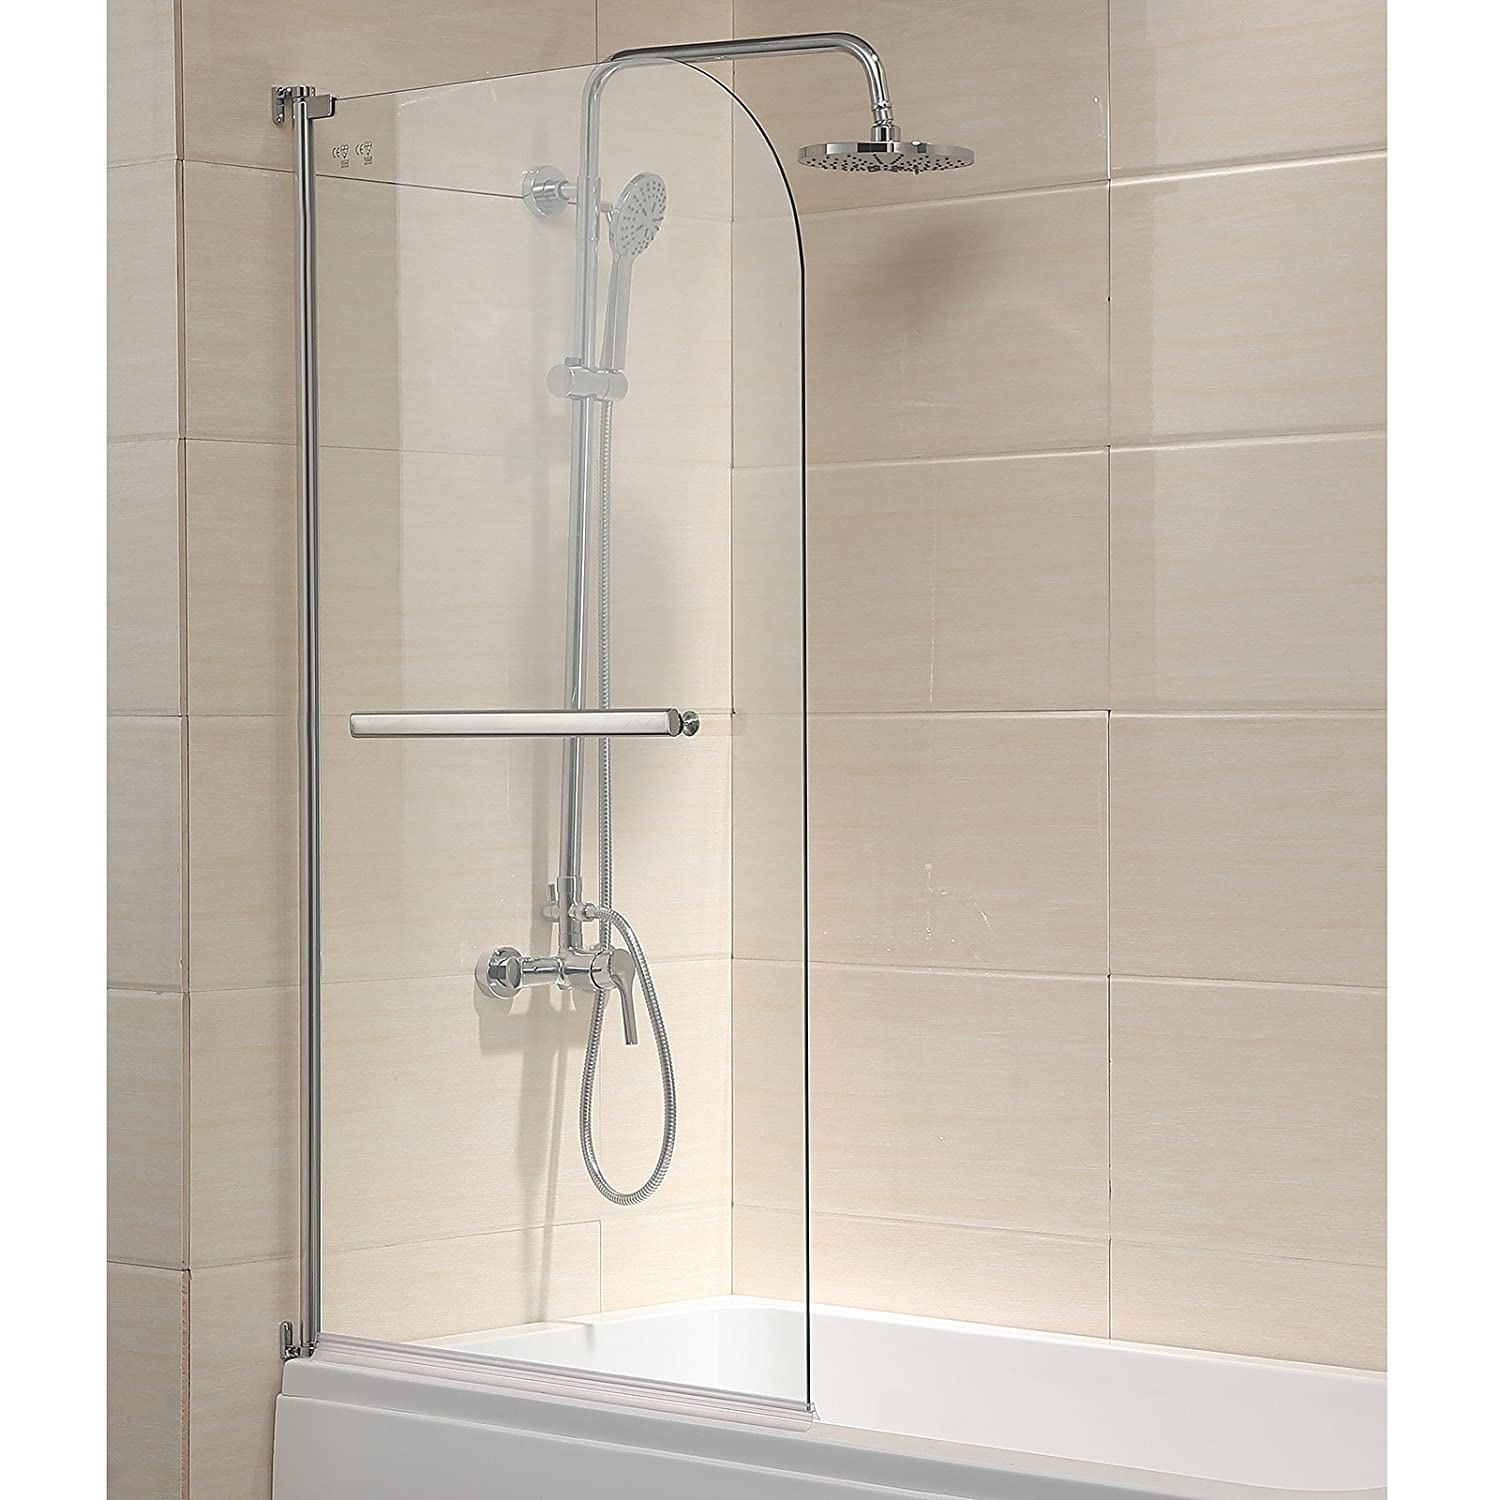 Bathtub Sliding Doors  sc 1 st  Amazon.com & Bathtub Sliding Doors | Amazon.com